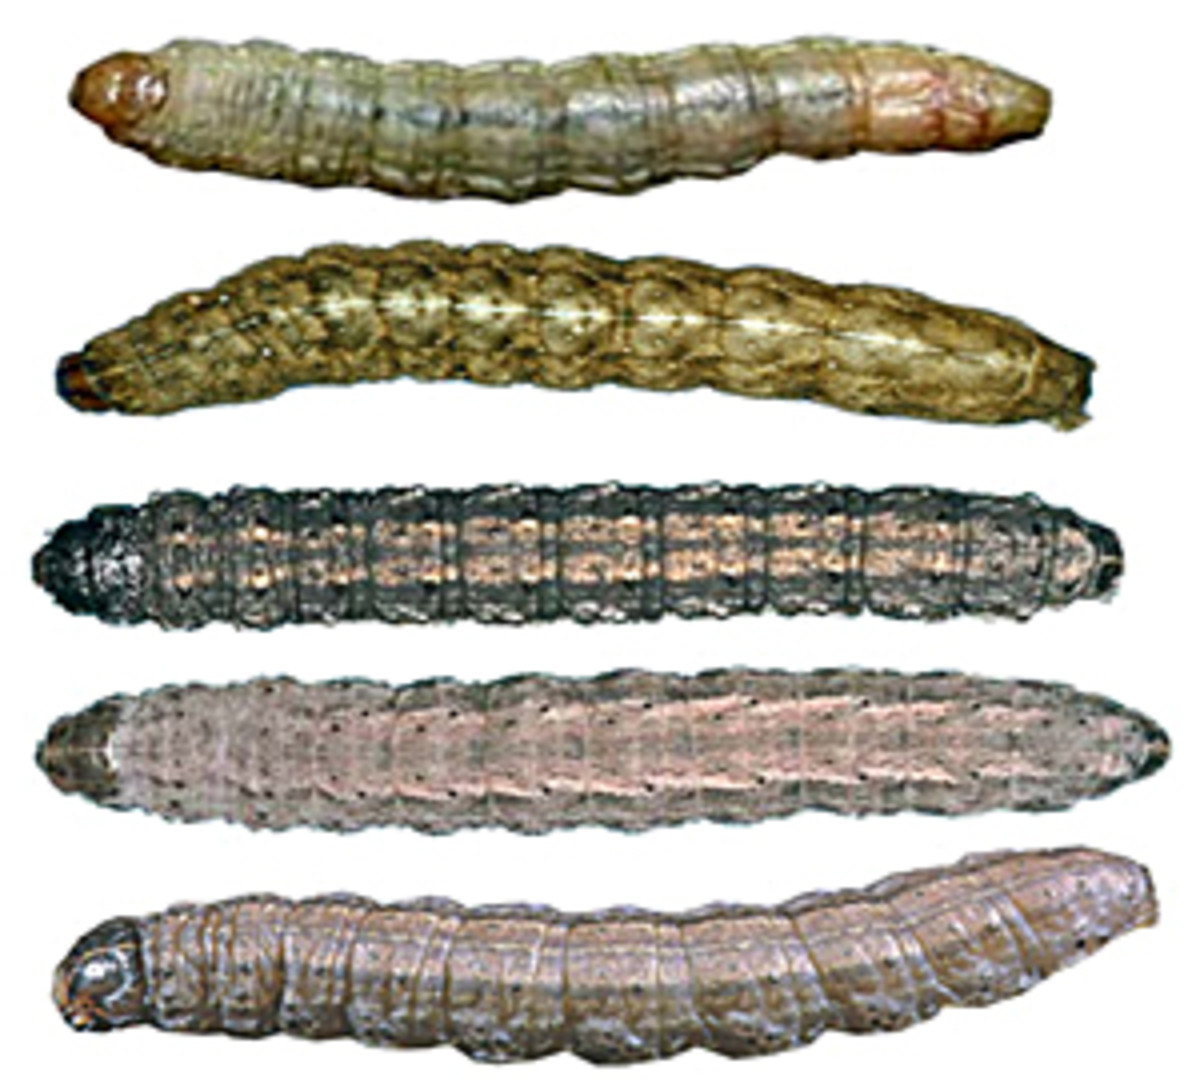 Cutworm larvae from top: sandhill cutworm, variegated cutworm, black cutworm, dingy cutworm, claybacked cutworm